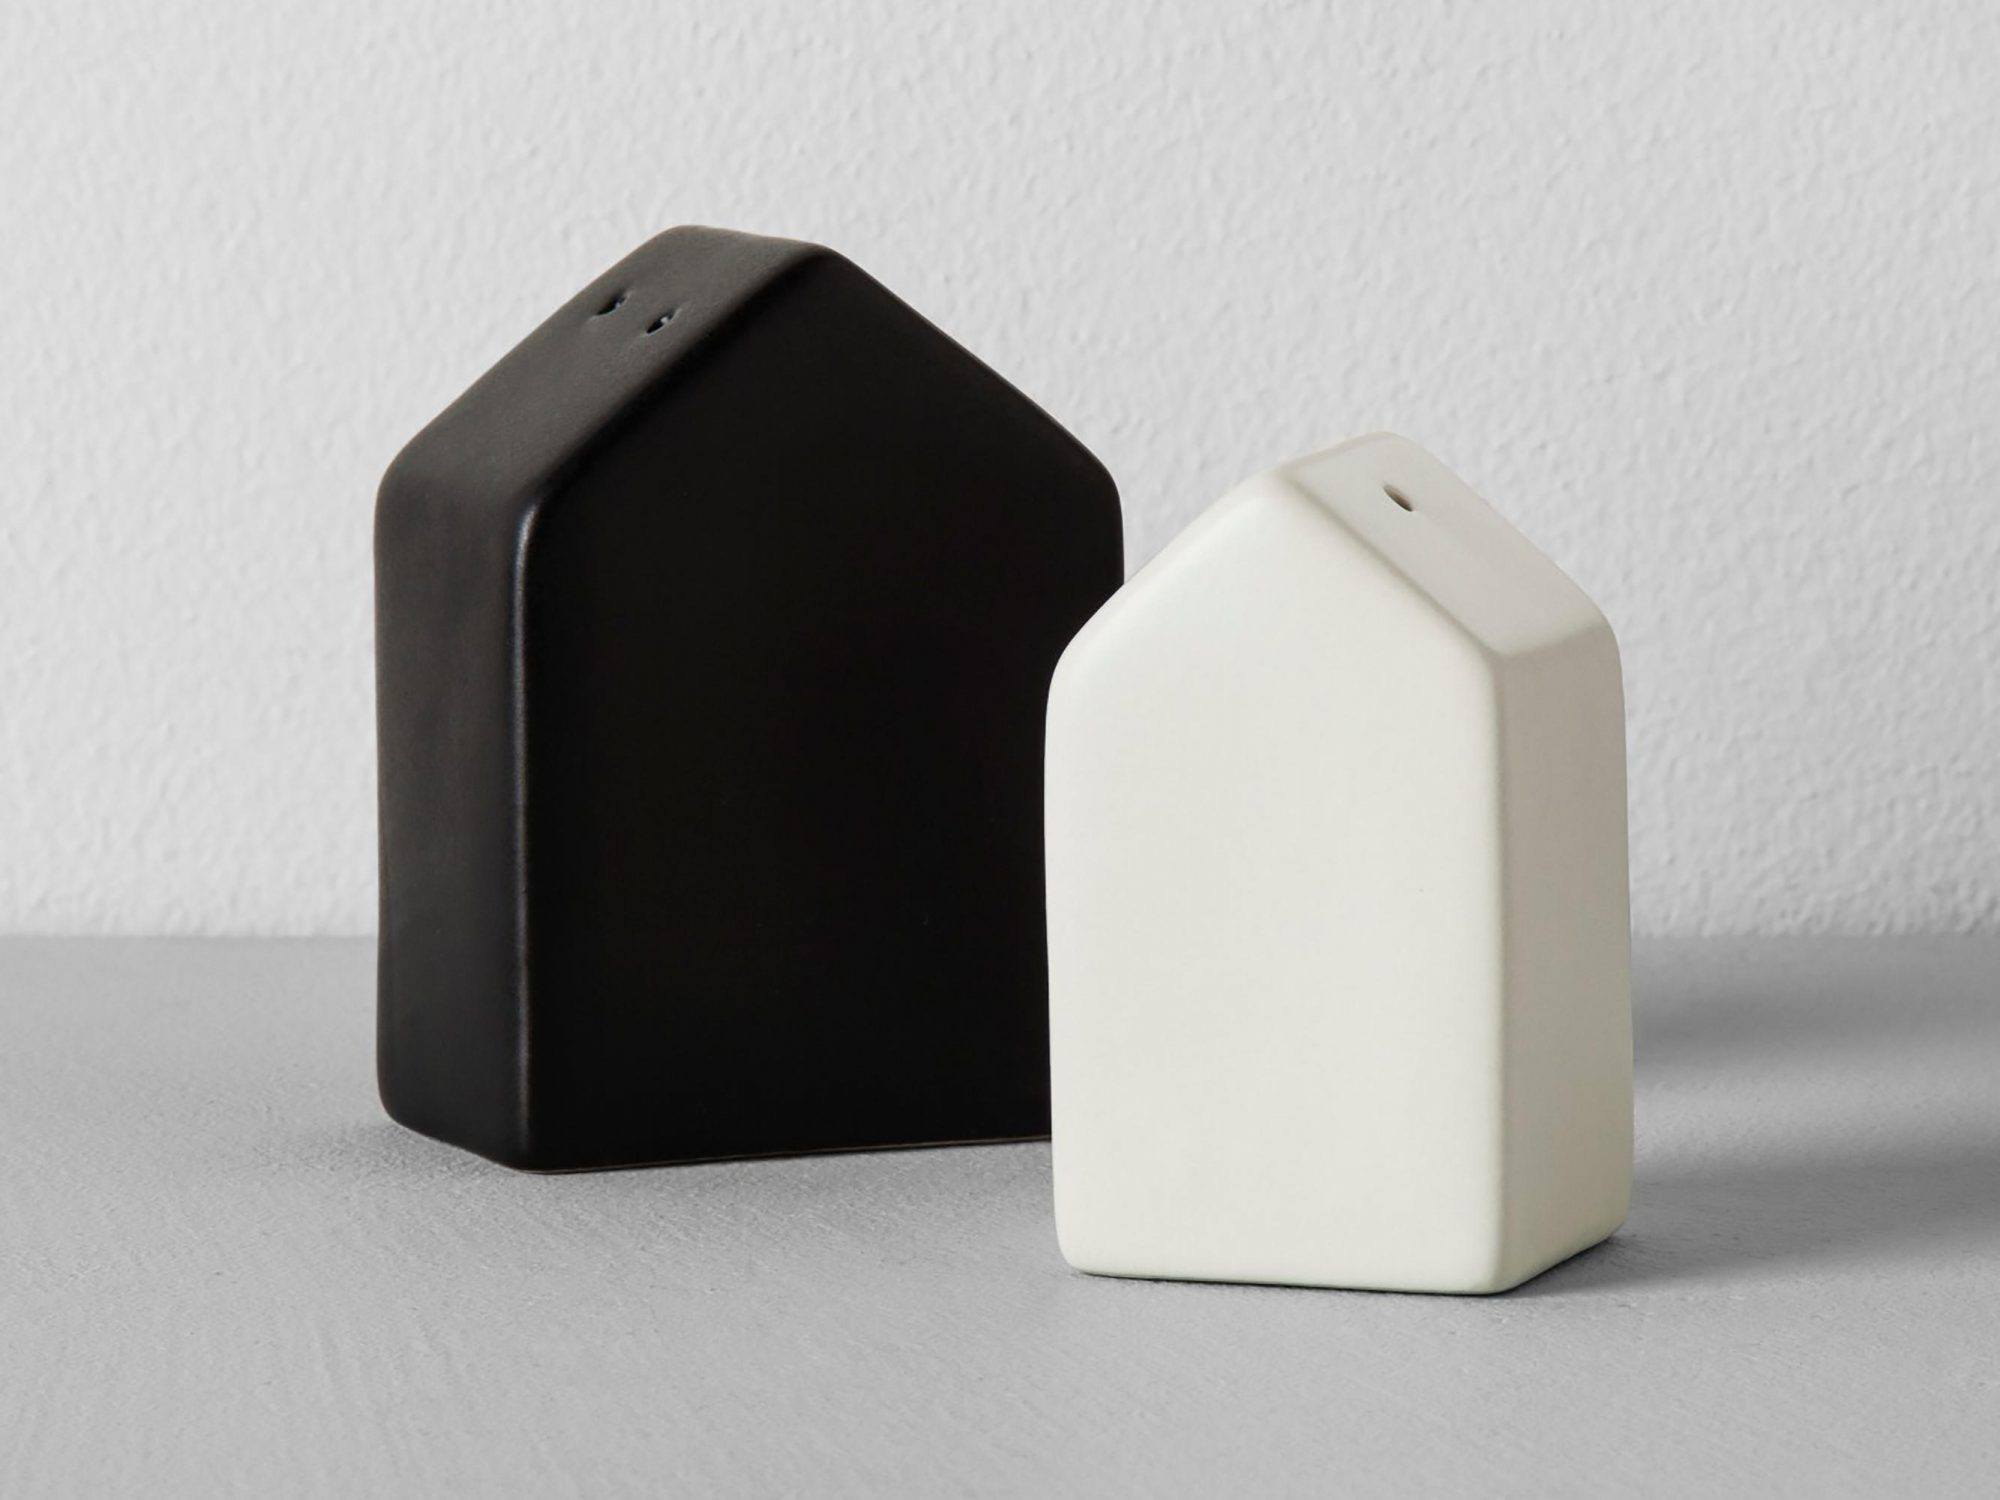 5 of Our Favorite Kitchen Buys From Joanna and Chip's Target Collection 1804w-Target-Joanna-Salt-Shakers